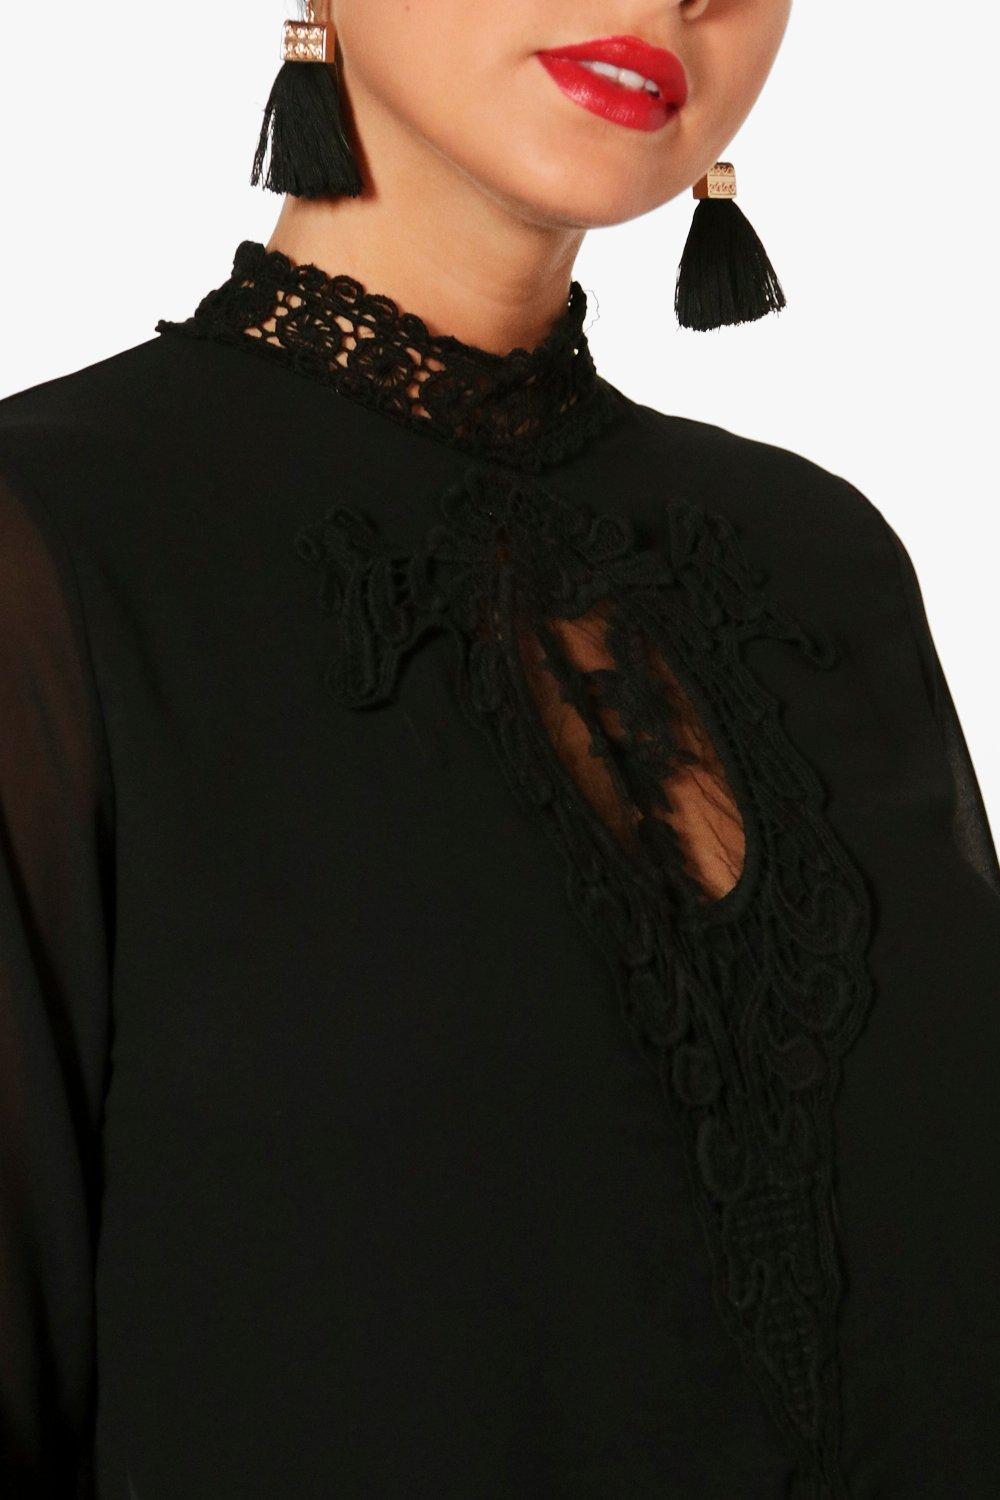 Lace Panel Lace black Panel Choker Blouse rr0dqaw